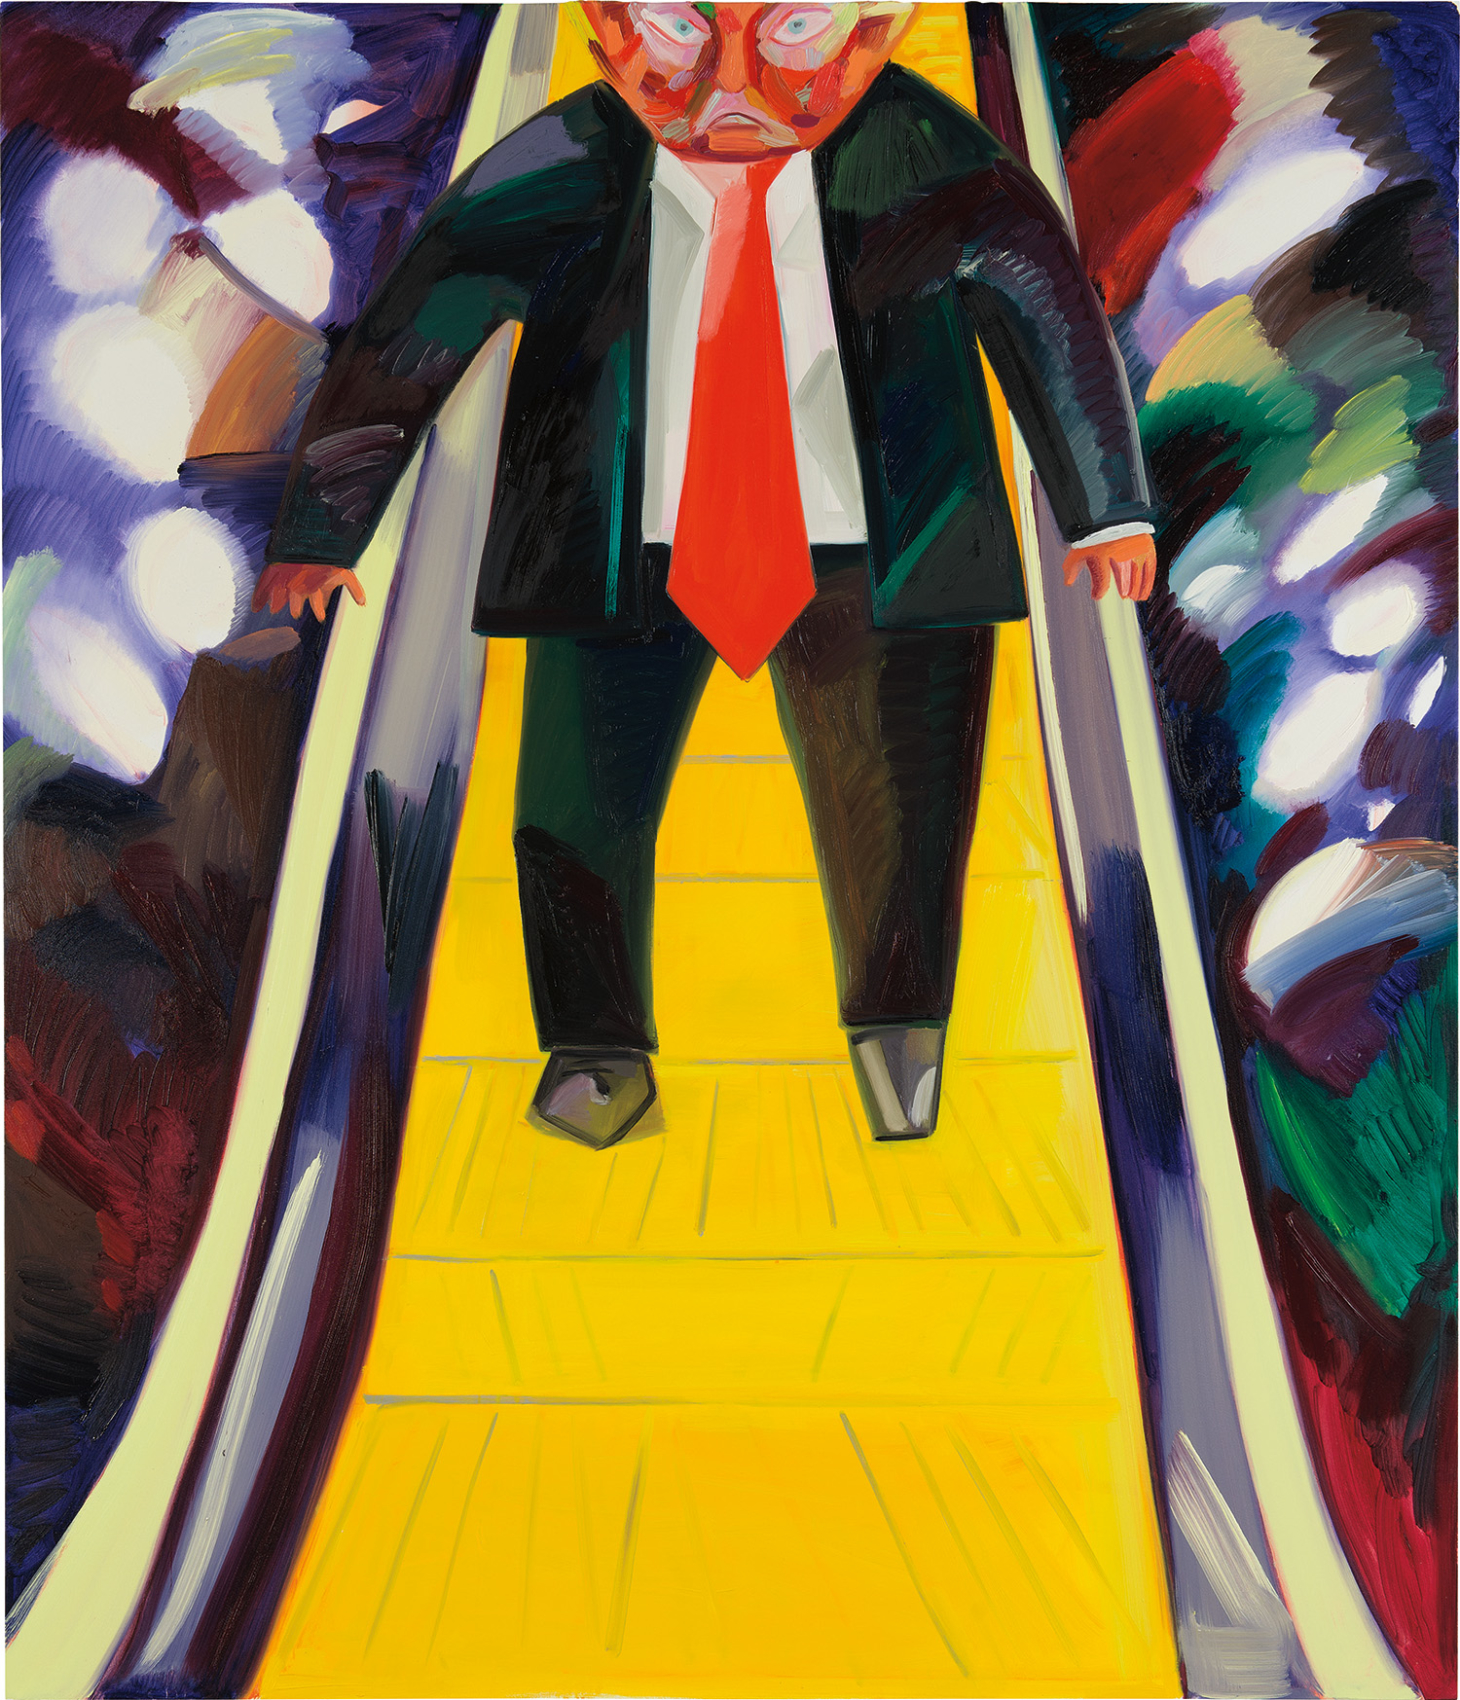 A Dana Schutz Portrait of Trump Just Sold For More Than 1,000